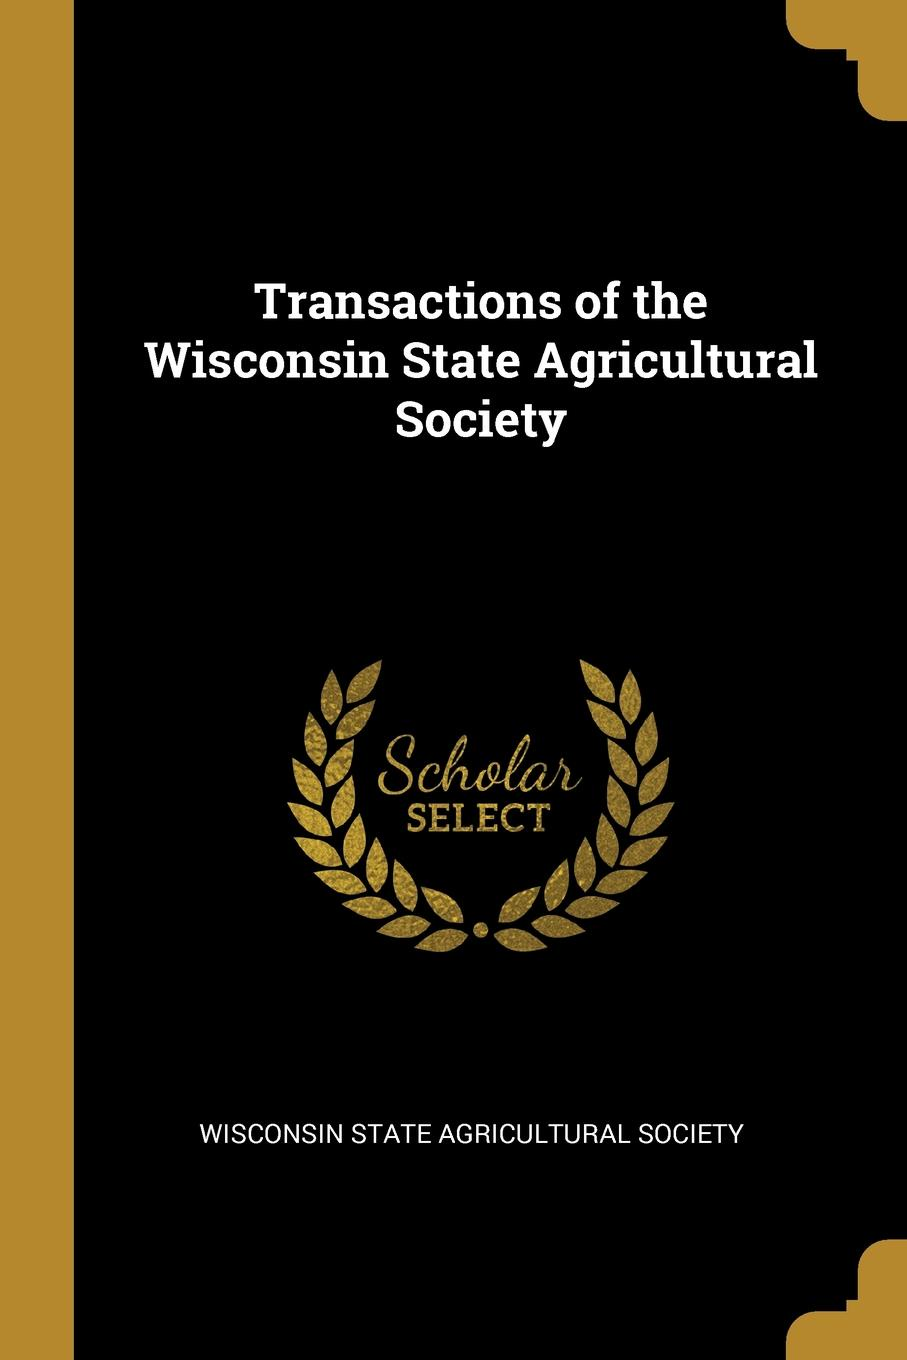 Wisconsin State Agricultural Society Transactions of the Wisconsin State Agricultural Society